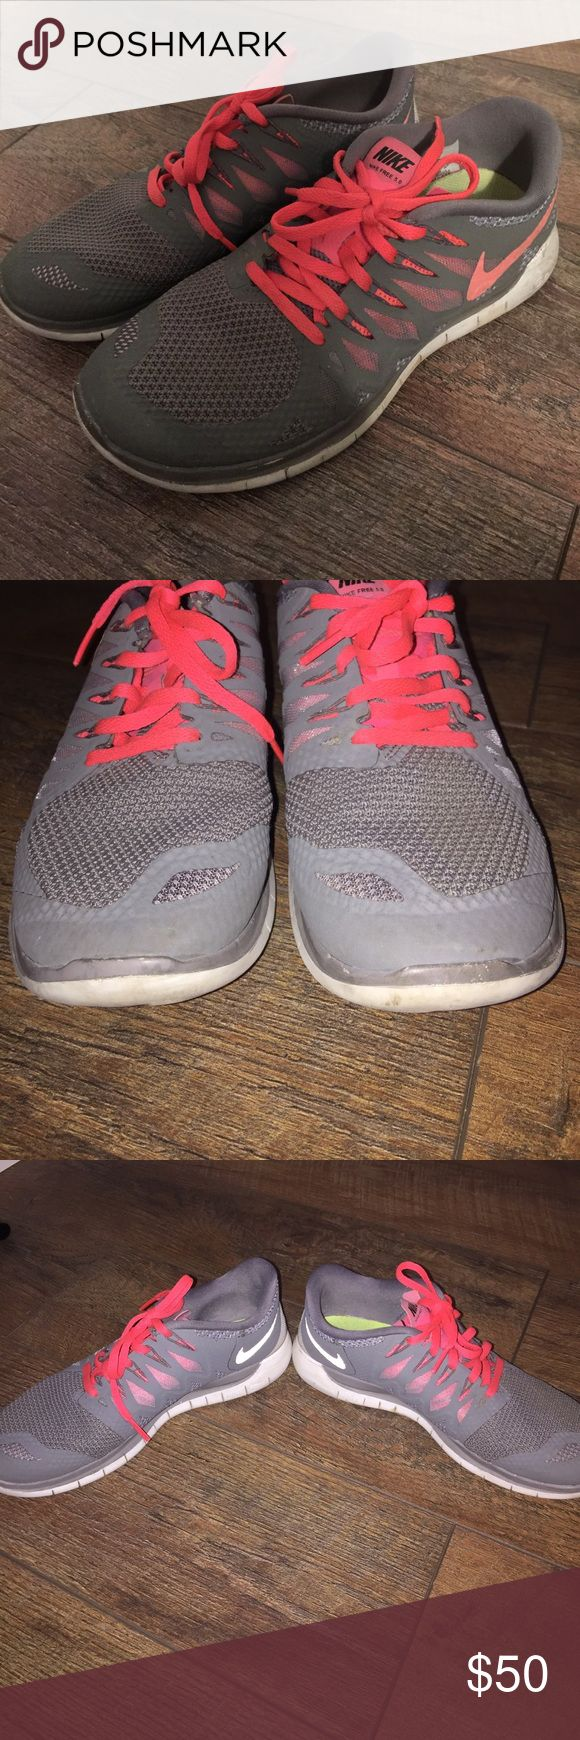 Nike Free 5.0 Tennis Shoes Gray and Pink Nike Free 5.0! Slightly worn, but overall great condition. Very comfortable, clean! Nike Shoes Sneakers